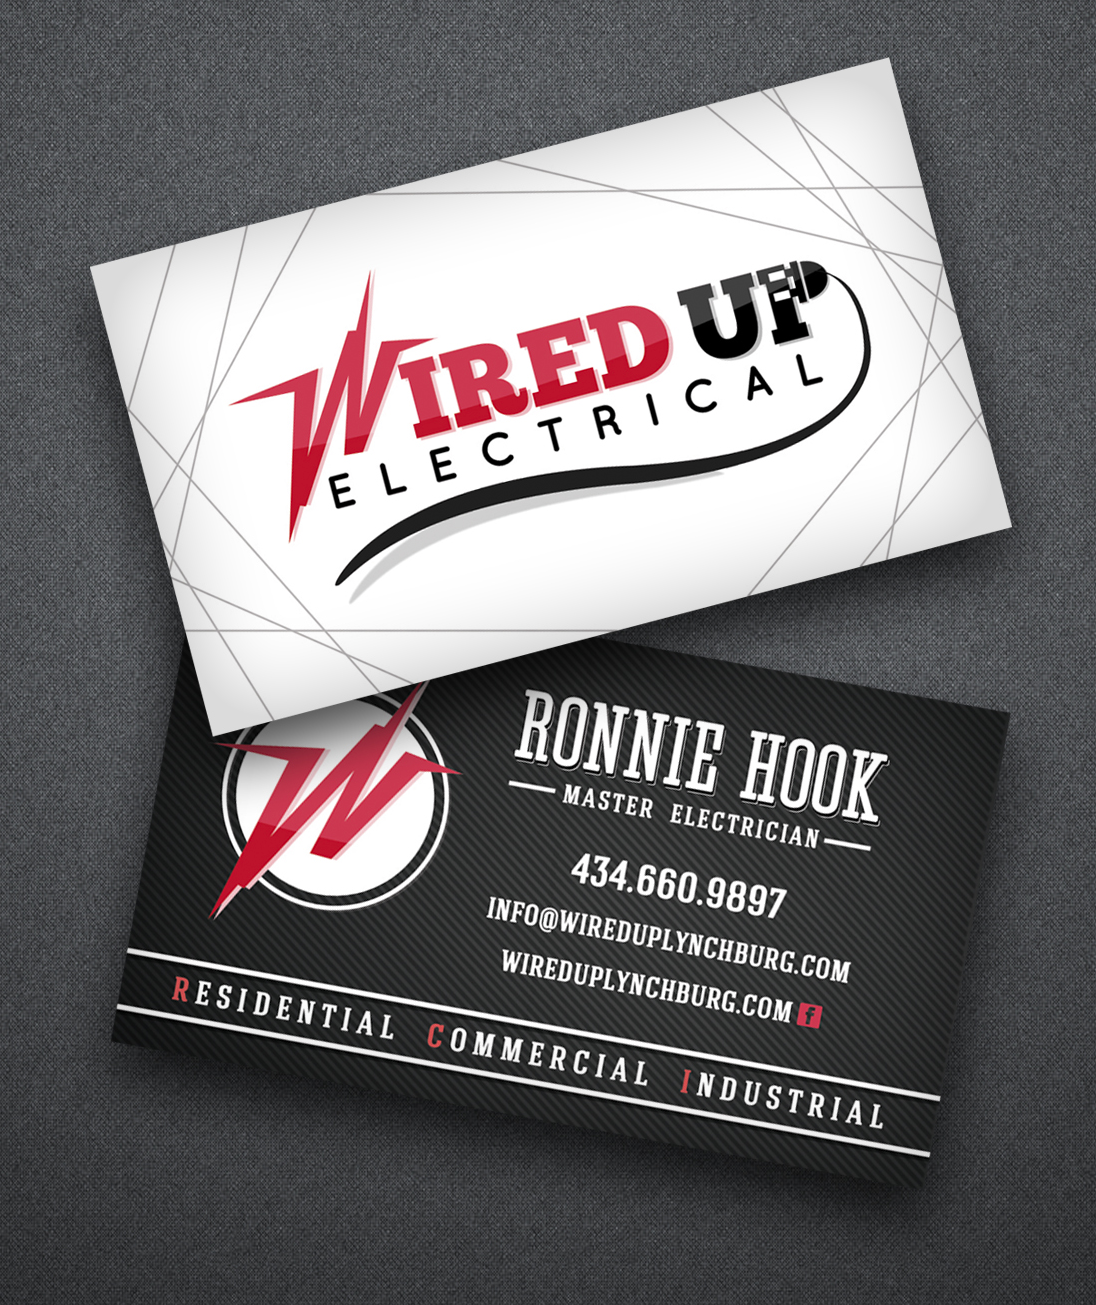 Birdbusinesscard More At Designresourcesio Free Business - Electrician business cards templates free